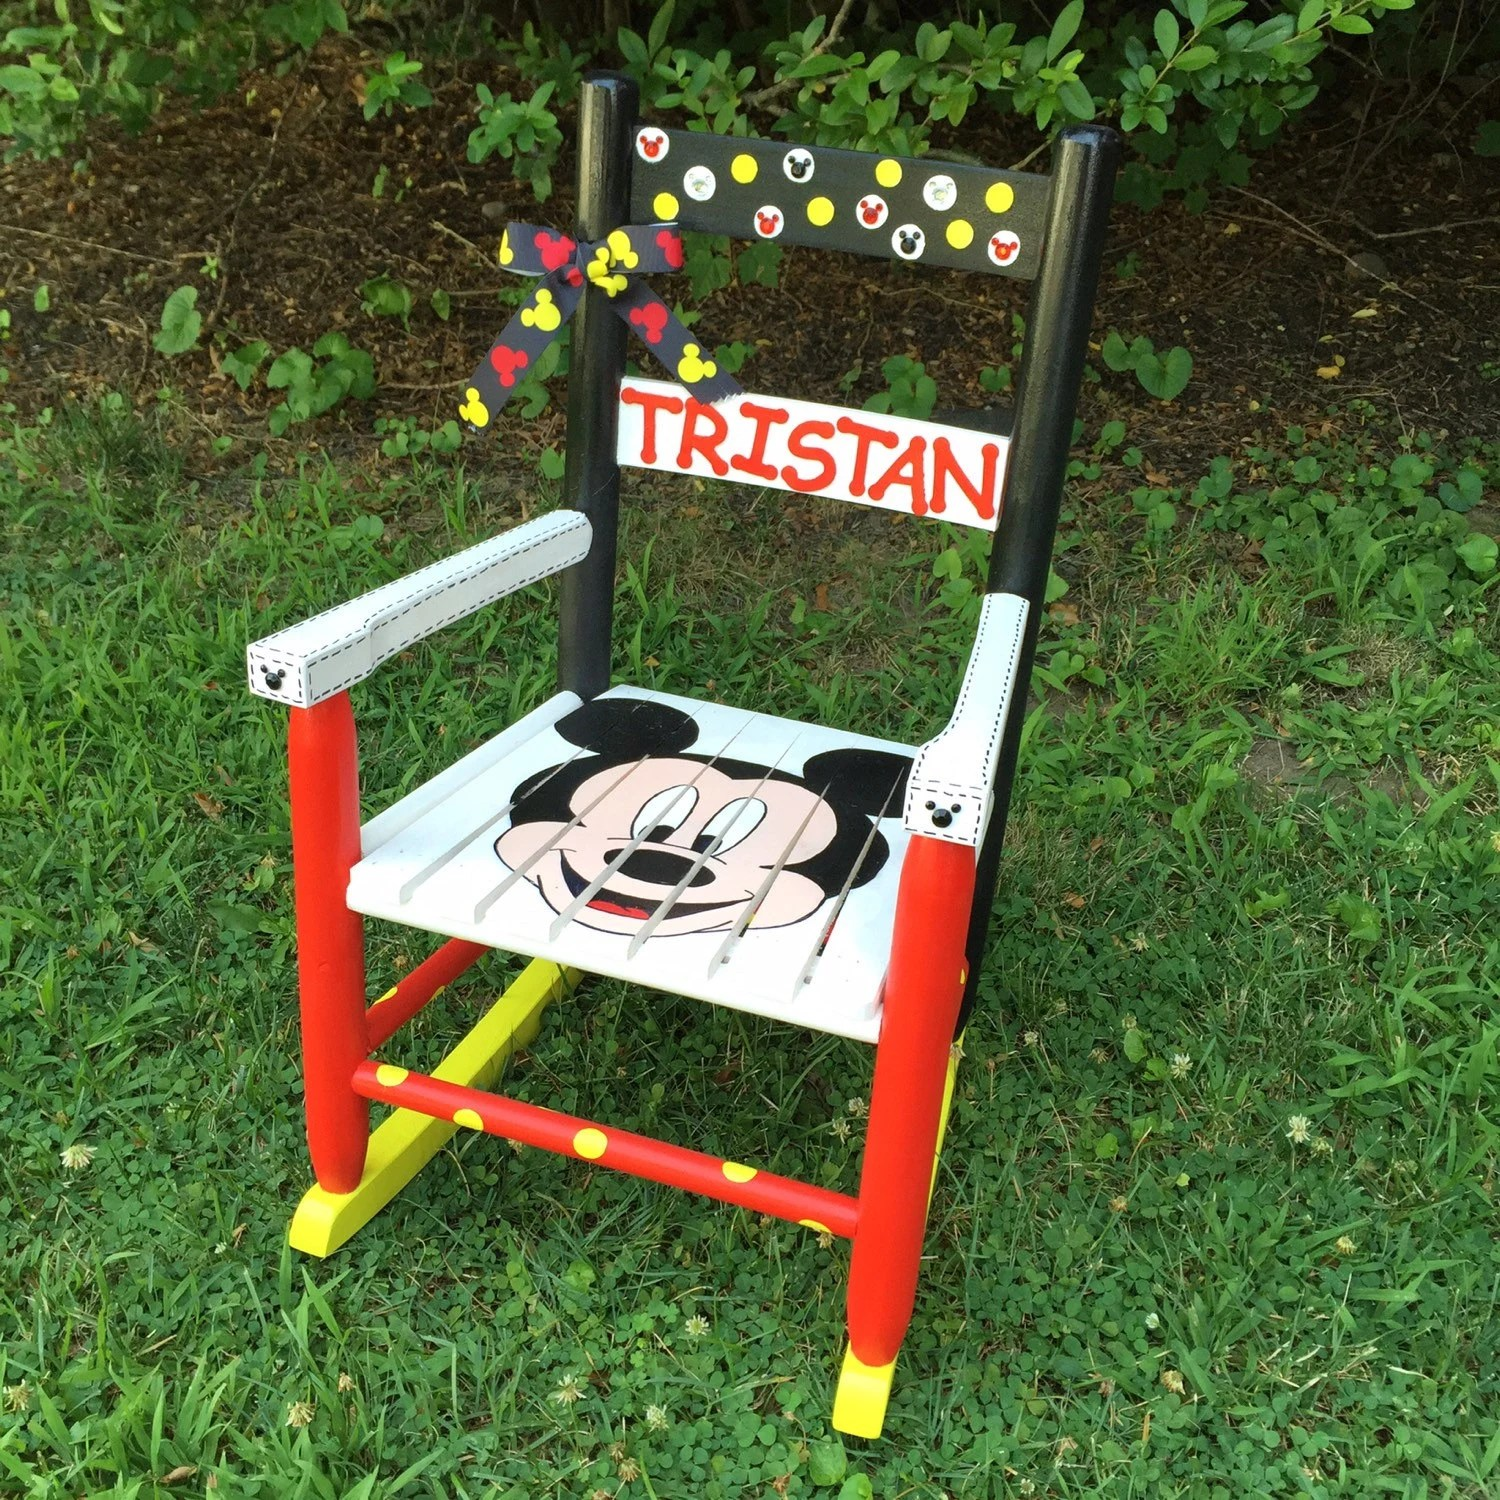 Rocking Chair For Toddlers Mickey Mouse Themed Rocking Chair Hand Painted Kids Rocker